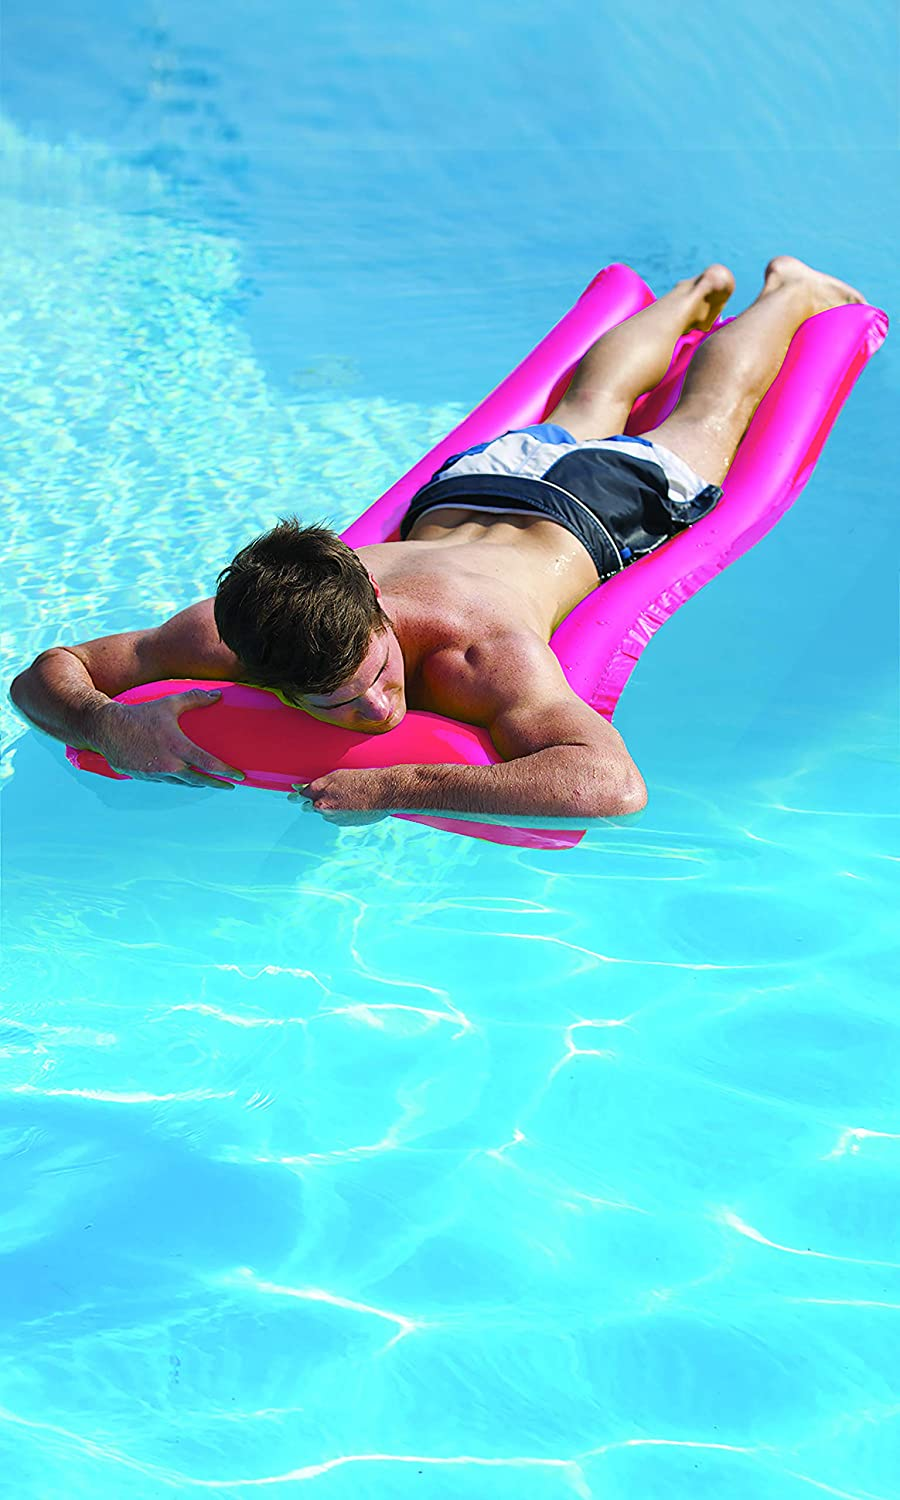 Pez Inflatable Pool Candy Shaped Float For Kids And Adults Jumbo Swimming Pool Lounger Fun Giant Floaties Relax In Sun Summer Gift Sports Outdoors